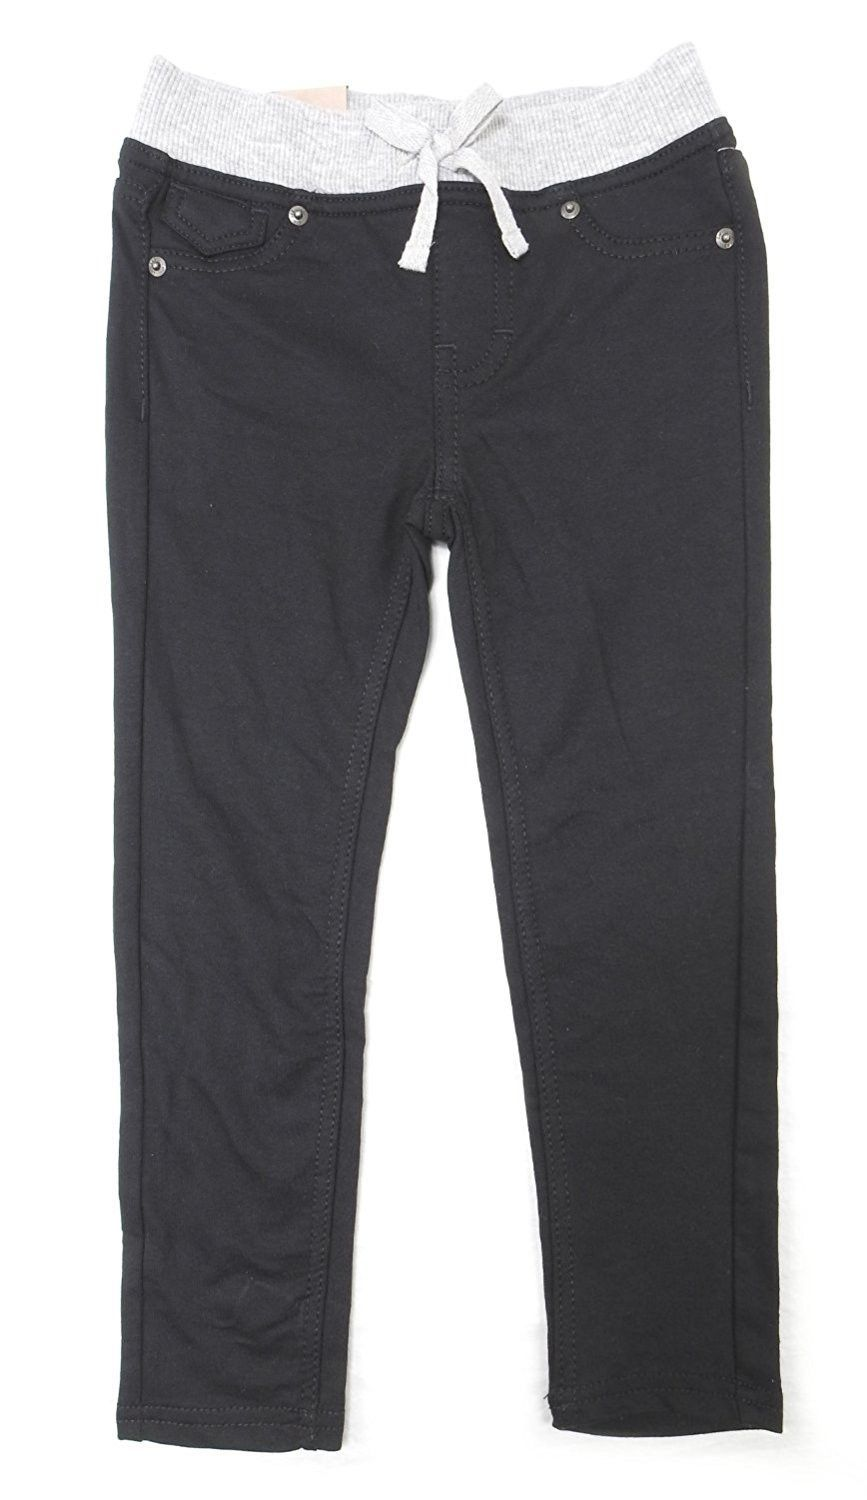 LEE Girls Stretch Knit Skinny Pants